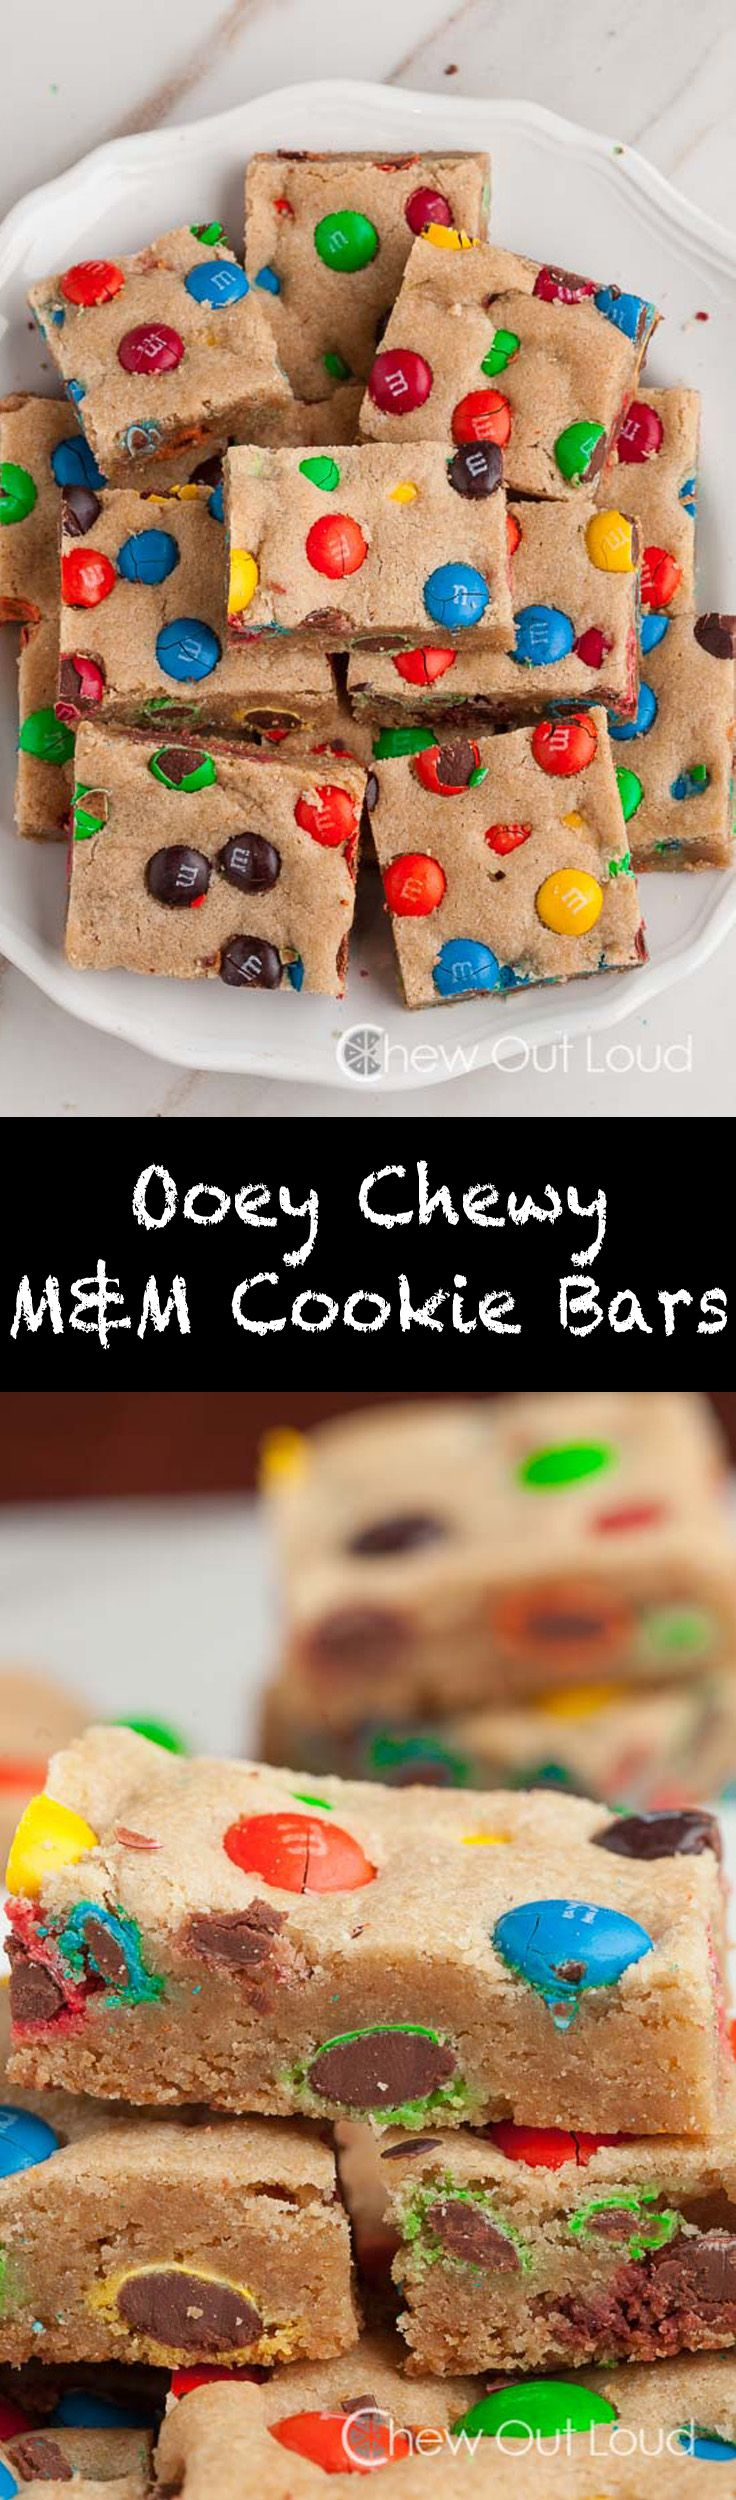 pinterest↦ xanlilinkx ❥ || These are everyone's favorite at every potluck, picnic, party...everywhere, basically. Chewy yum. #m&m #cookie #recipe